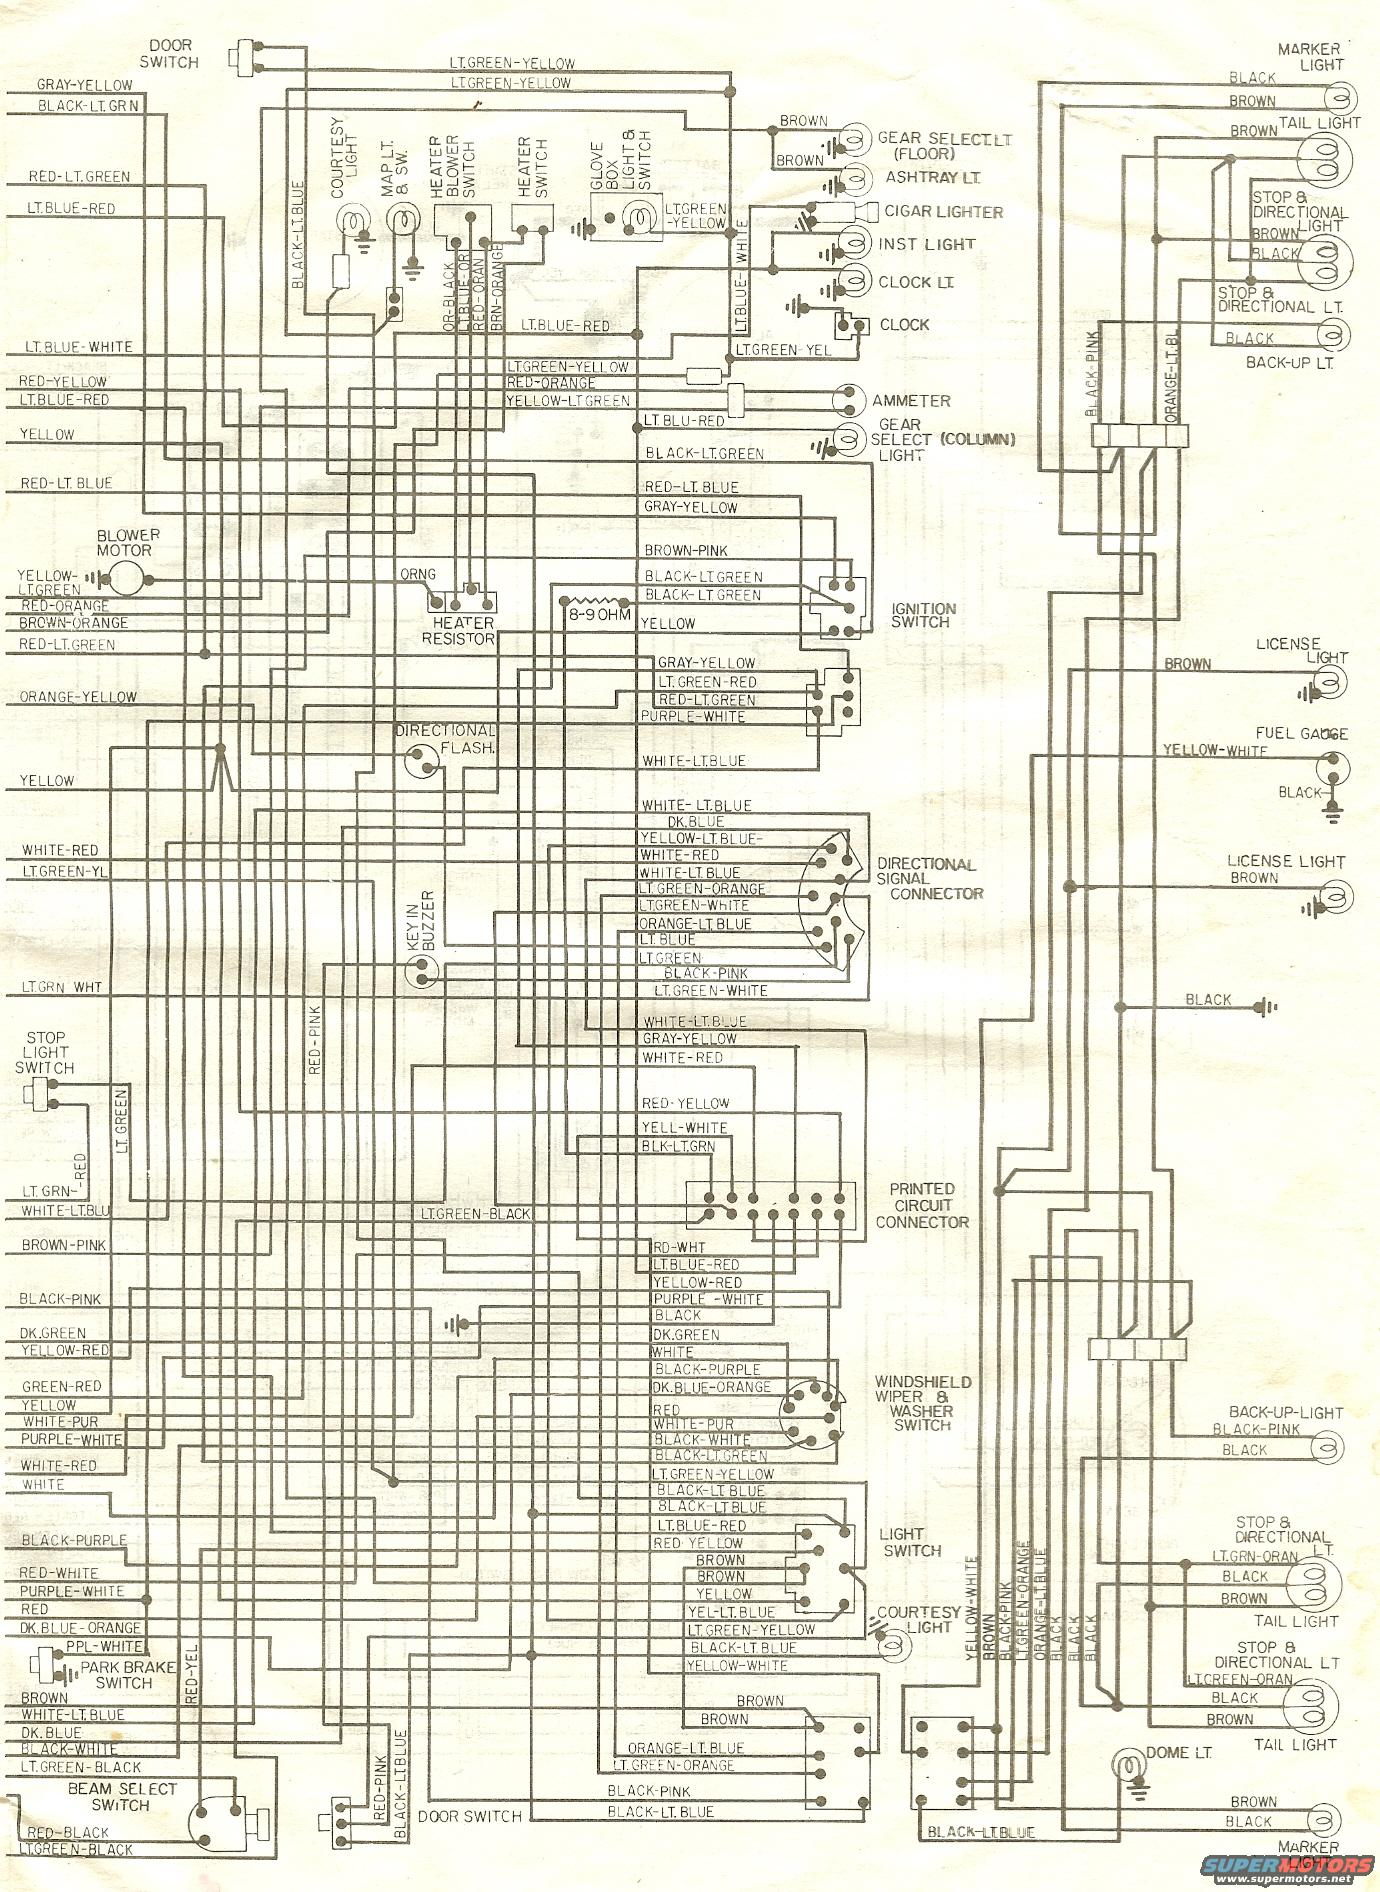 1978 Mgb Wiper Wiring Diagram Auto Electrical Lincoln P203 1979 Roadster Free Engine Image